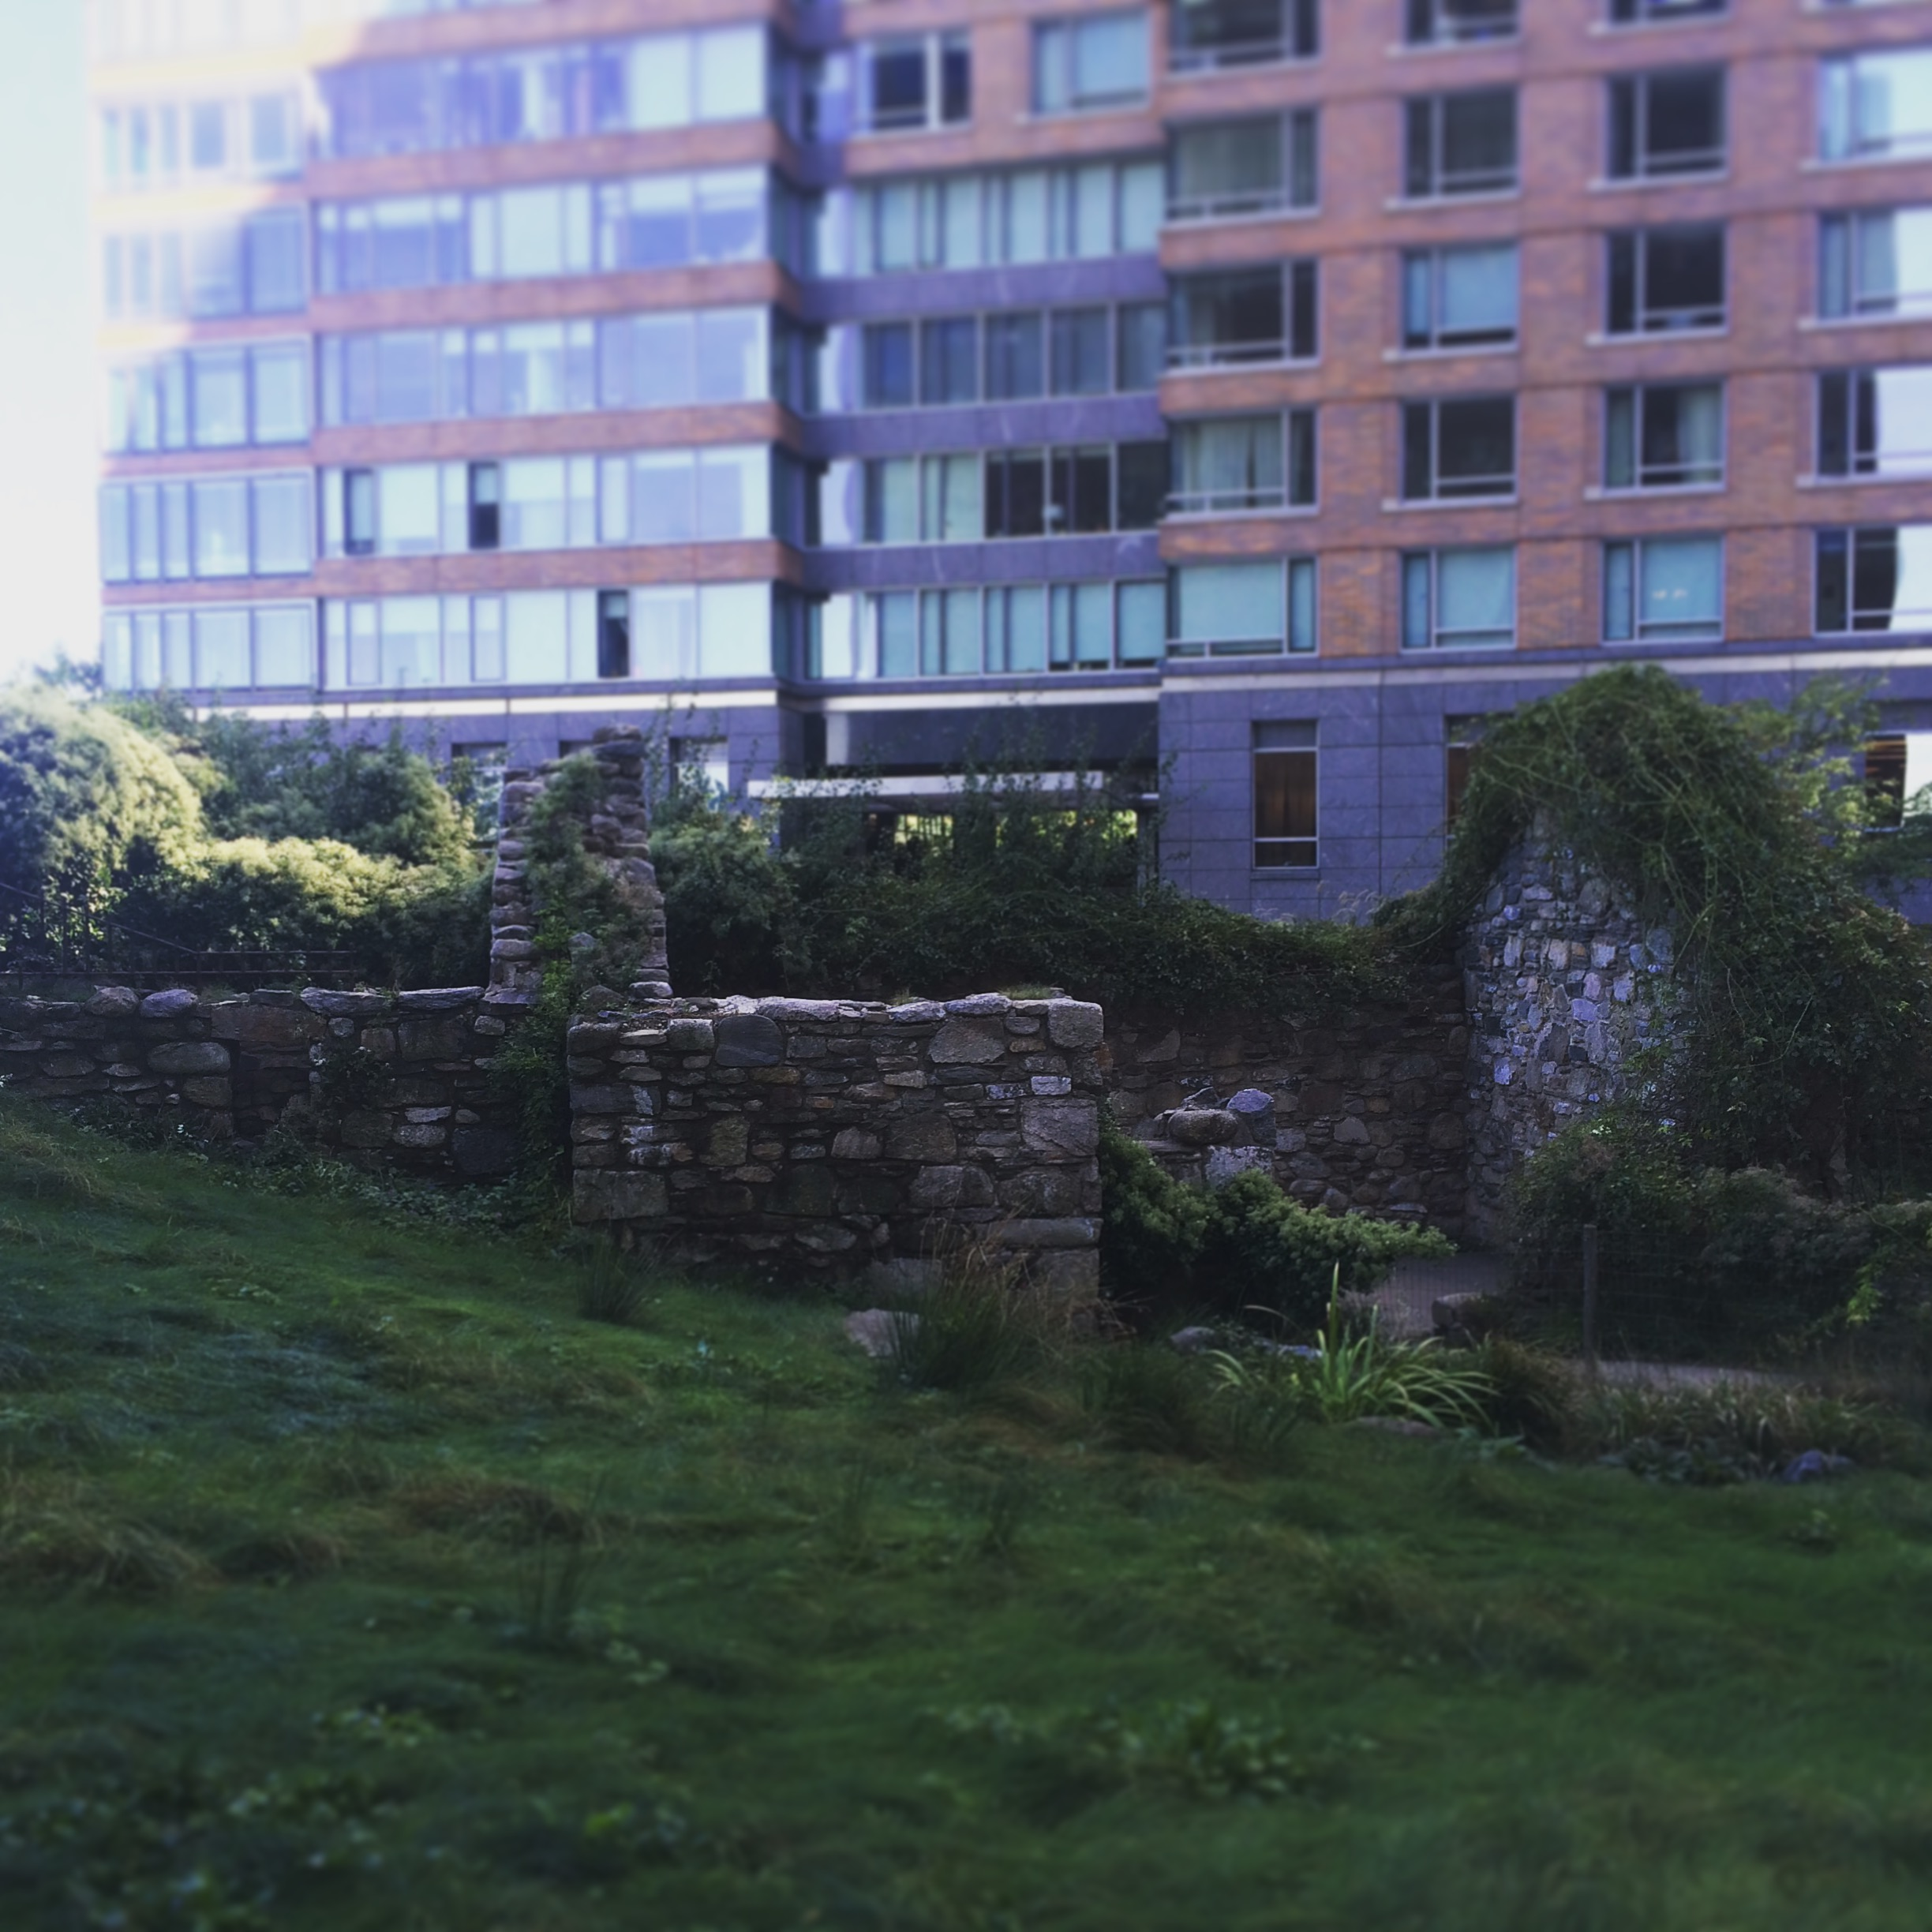 Irish Hunger Memorial, Battery Park